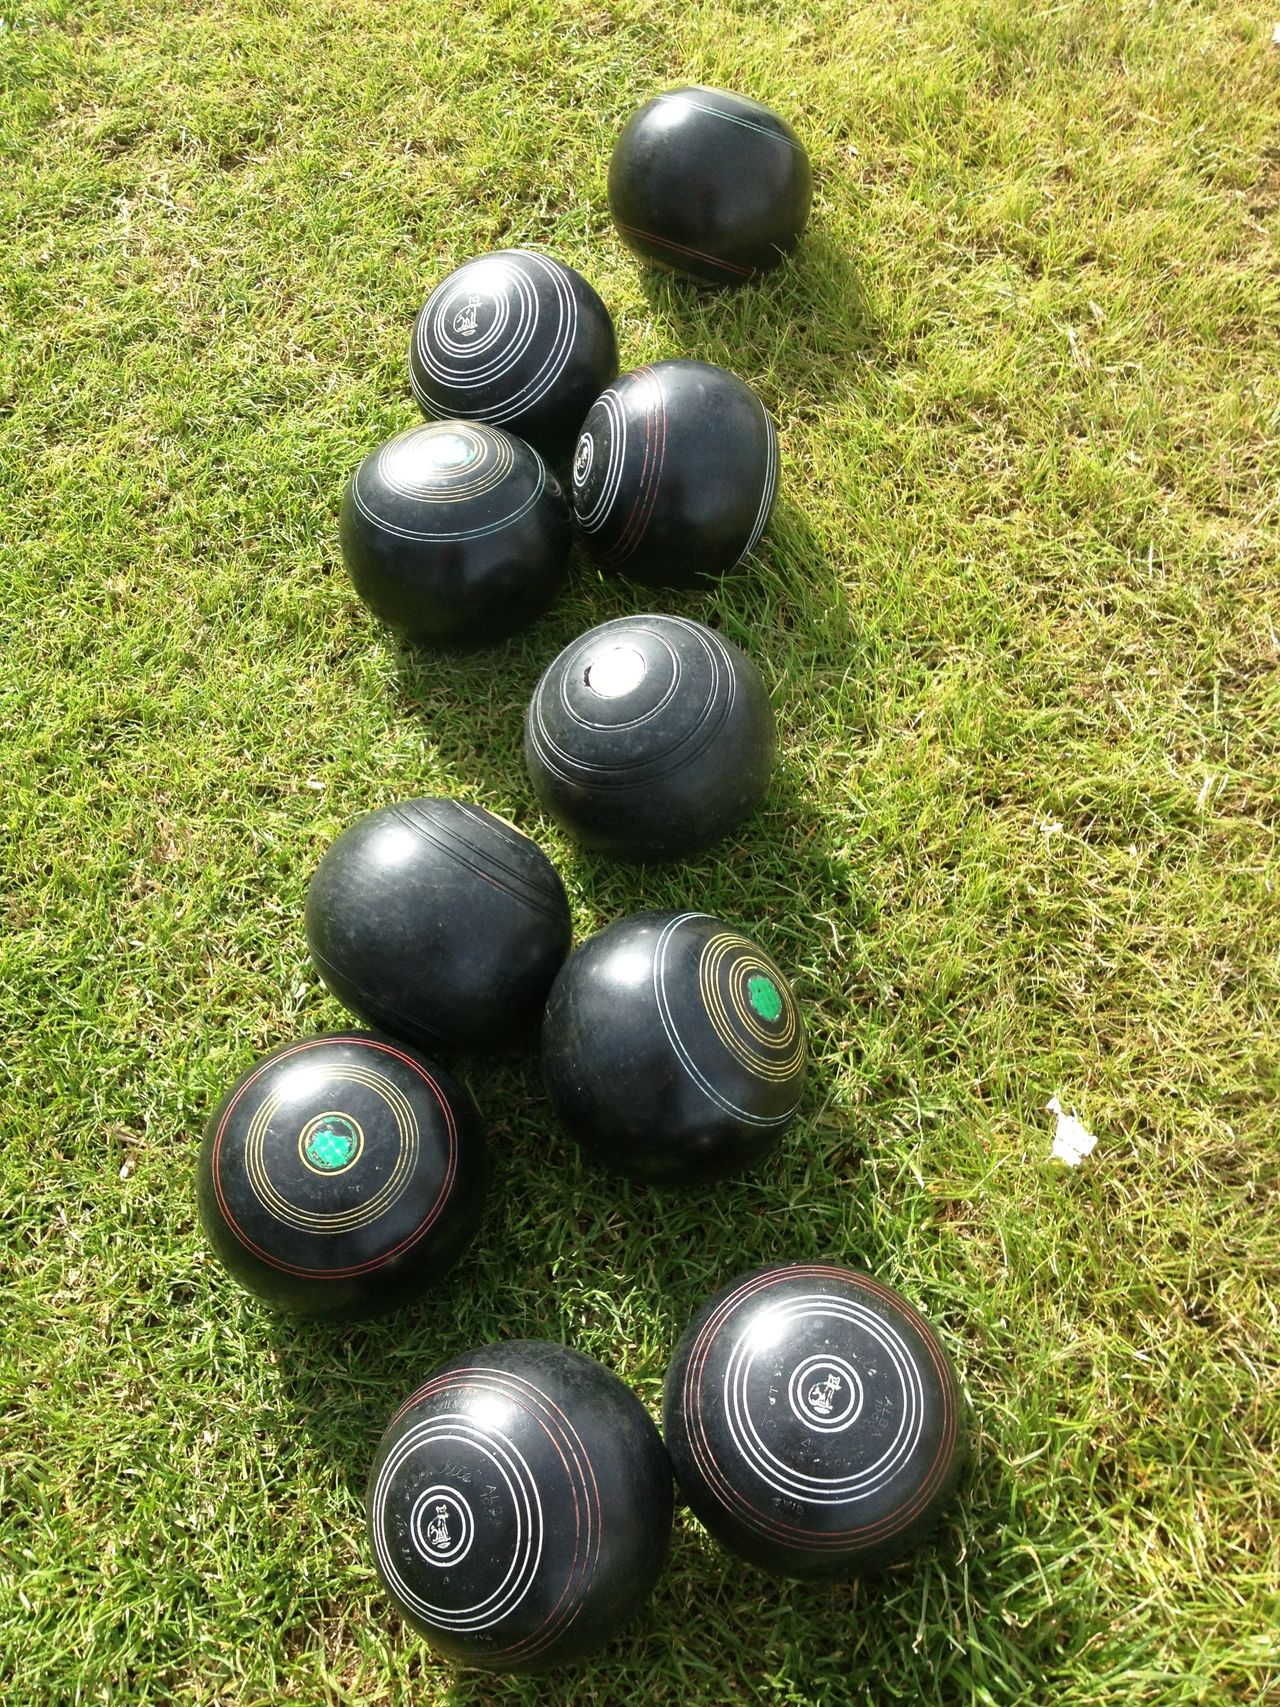 Blythe, CA Bowling Balls Close-up Day Grass High Angle View Landscape Lawn Bowling No People Outdoors